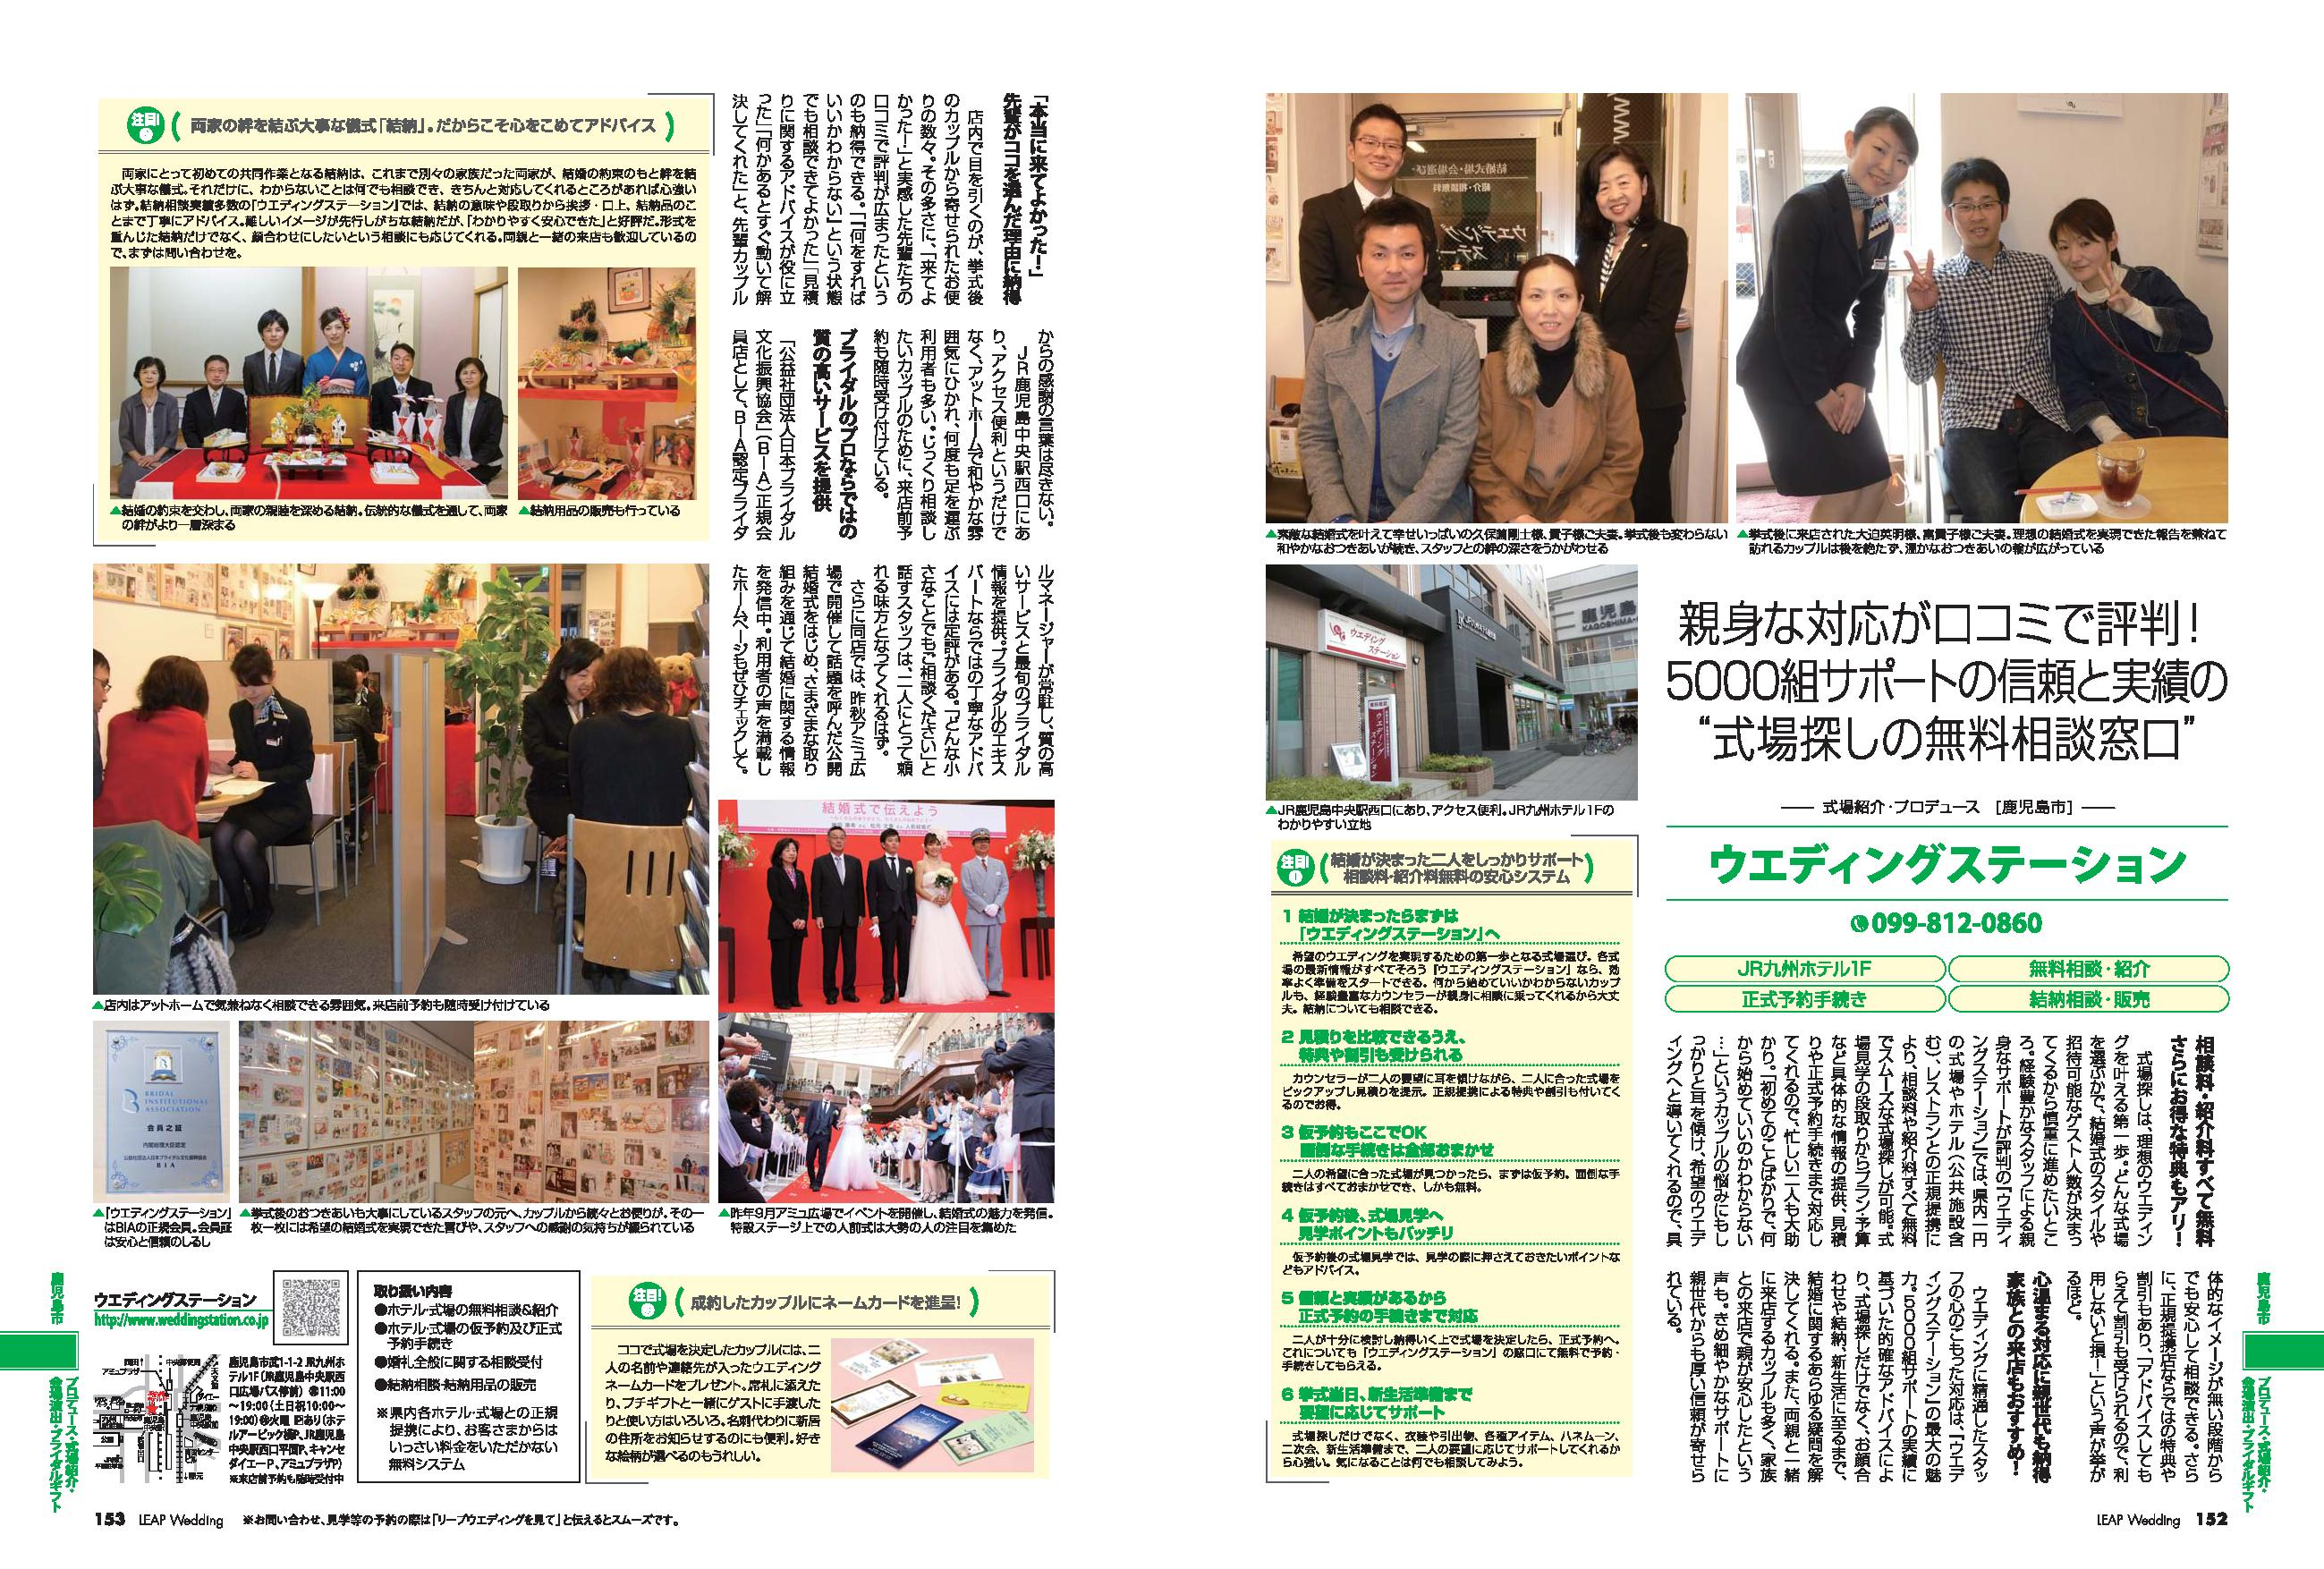 LEAP Wedding vol.25記事広0001